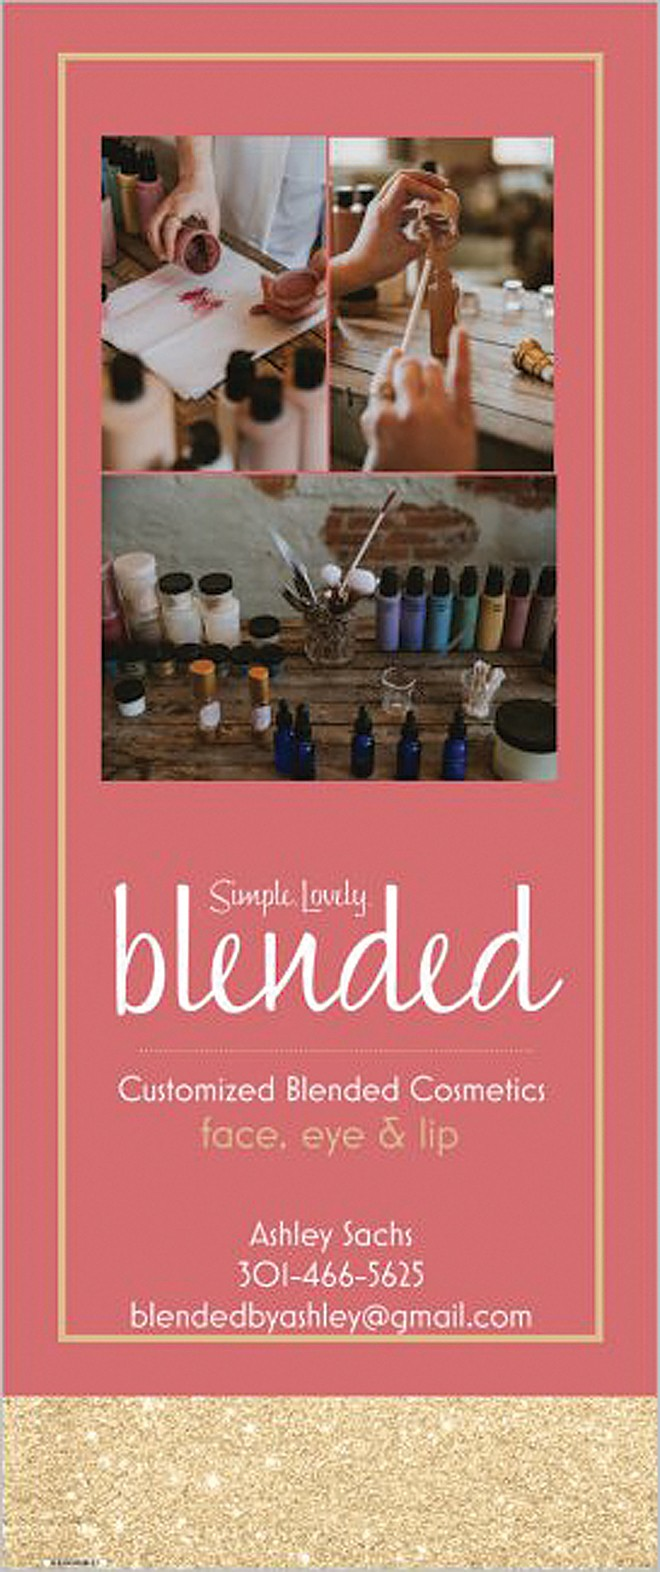 Ashley_Makeup_Blended_Ad_ond17